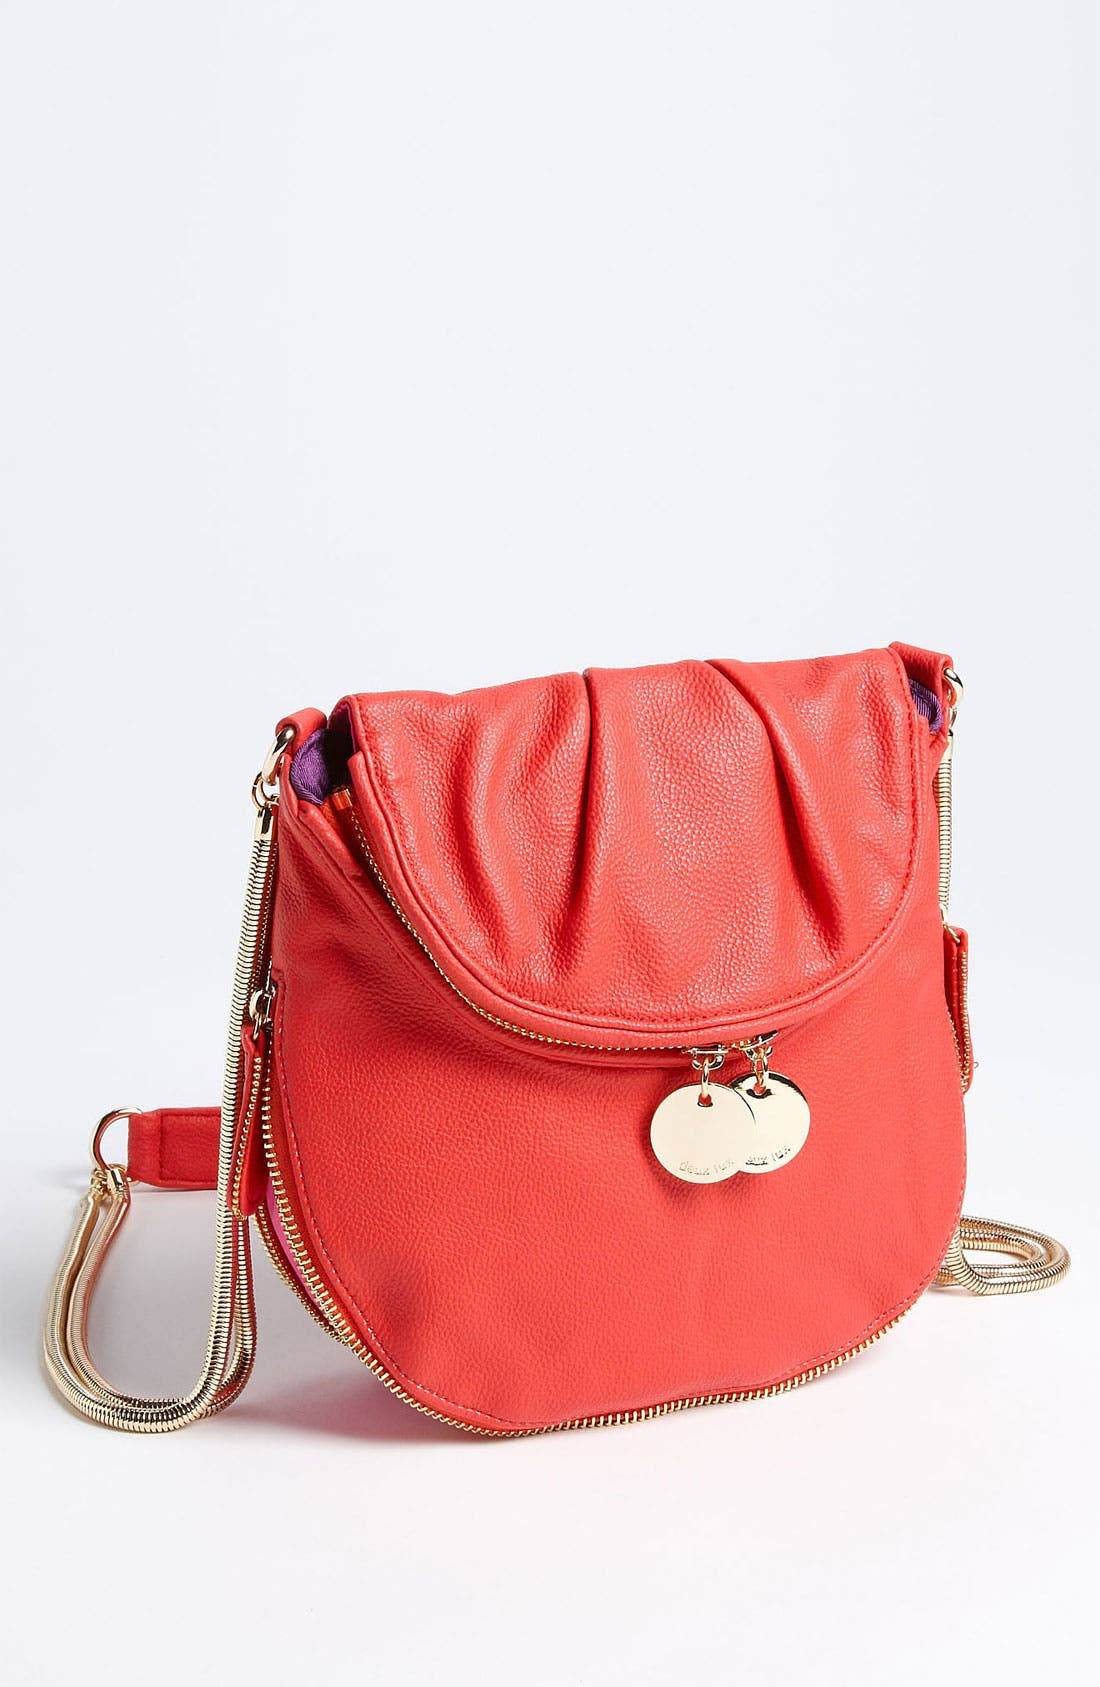 Main Image - Deux Lux 'Biba - Small' Crossbody Bag